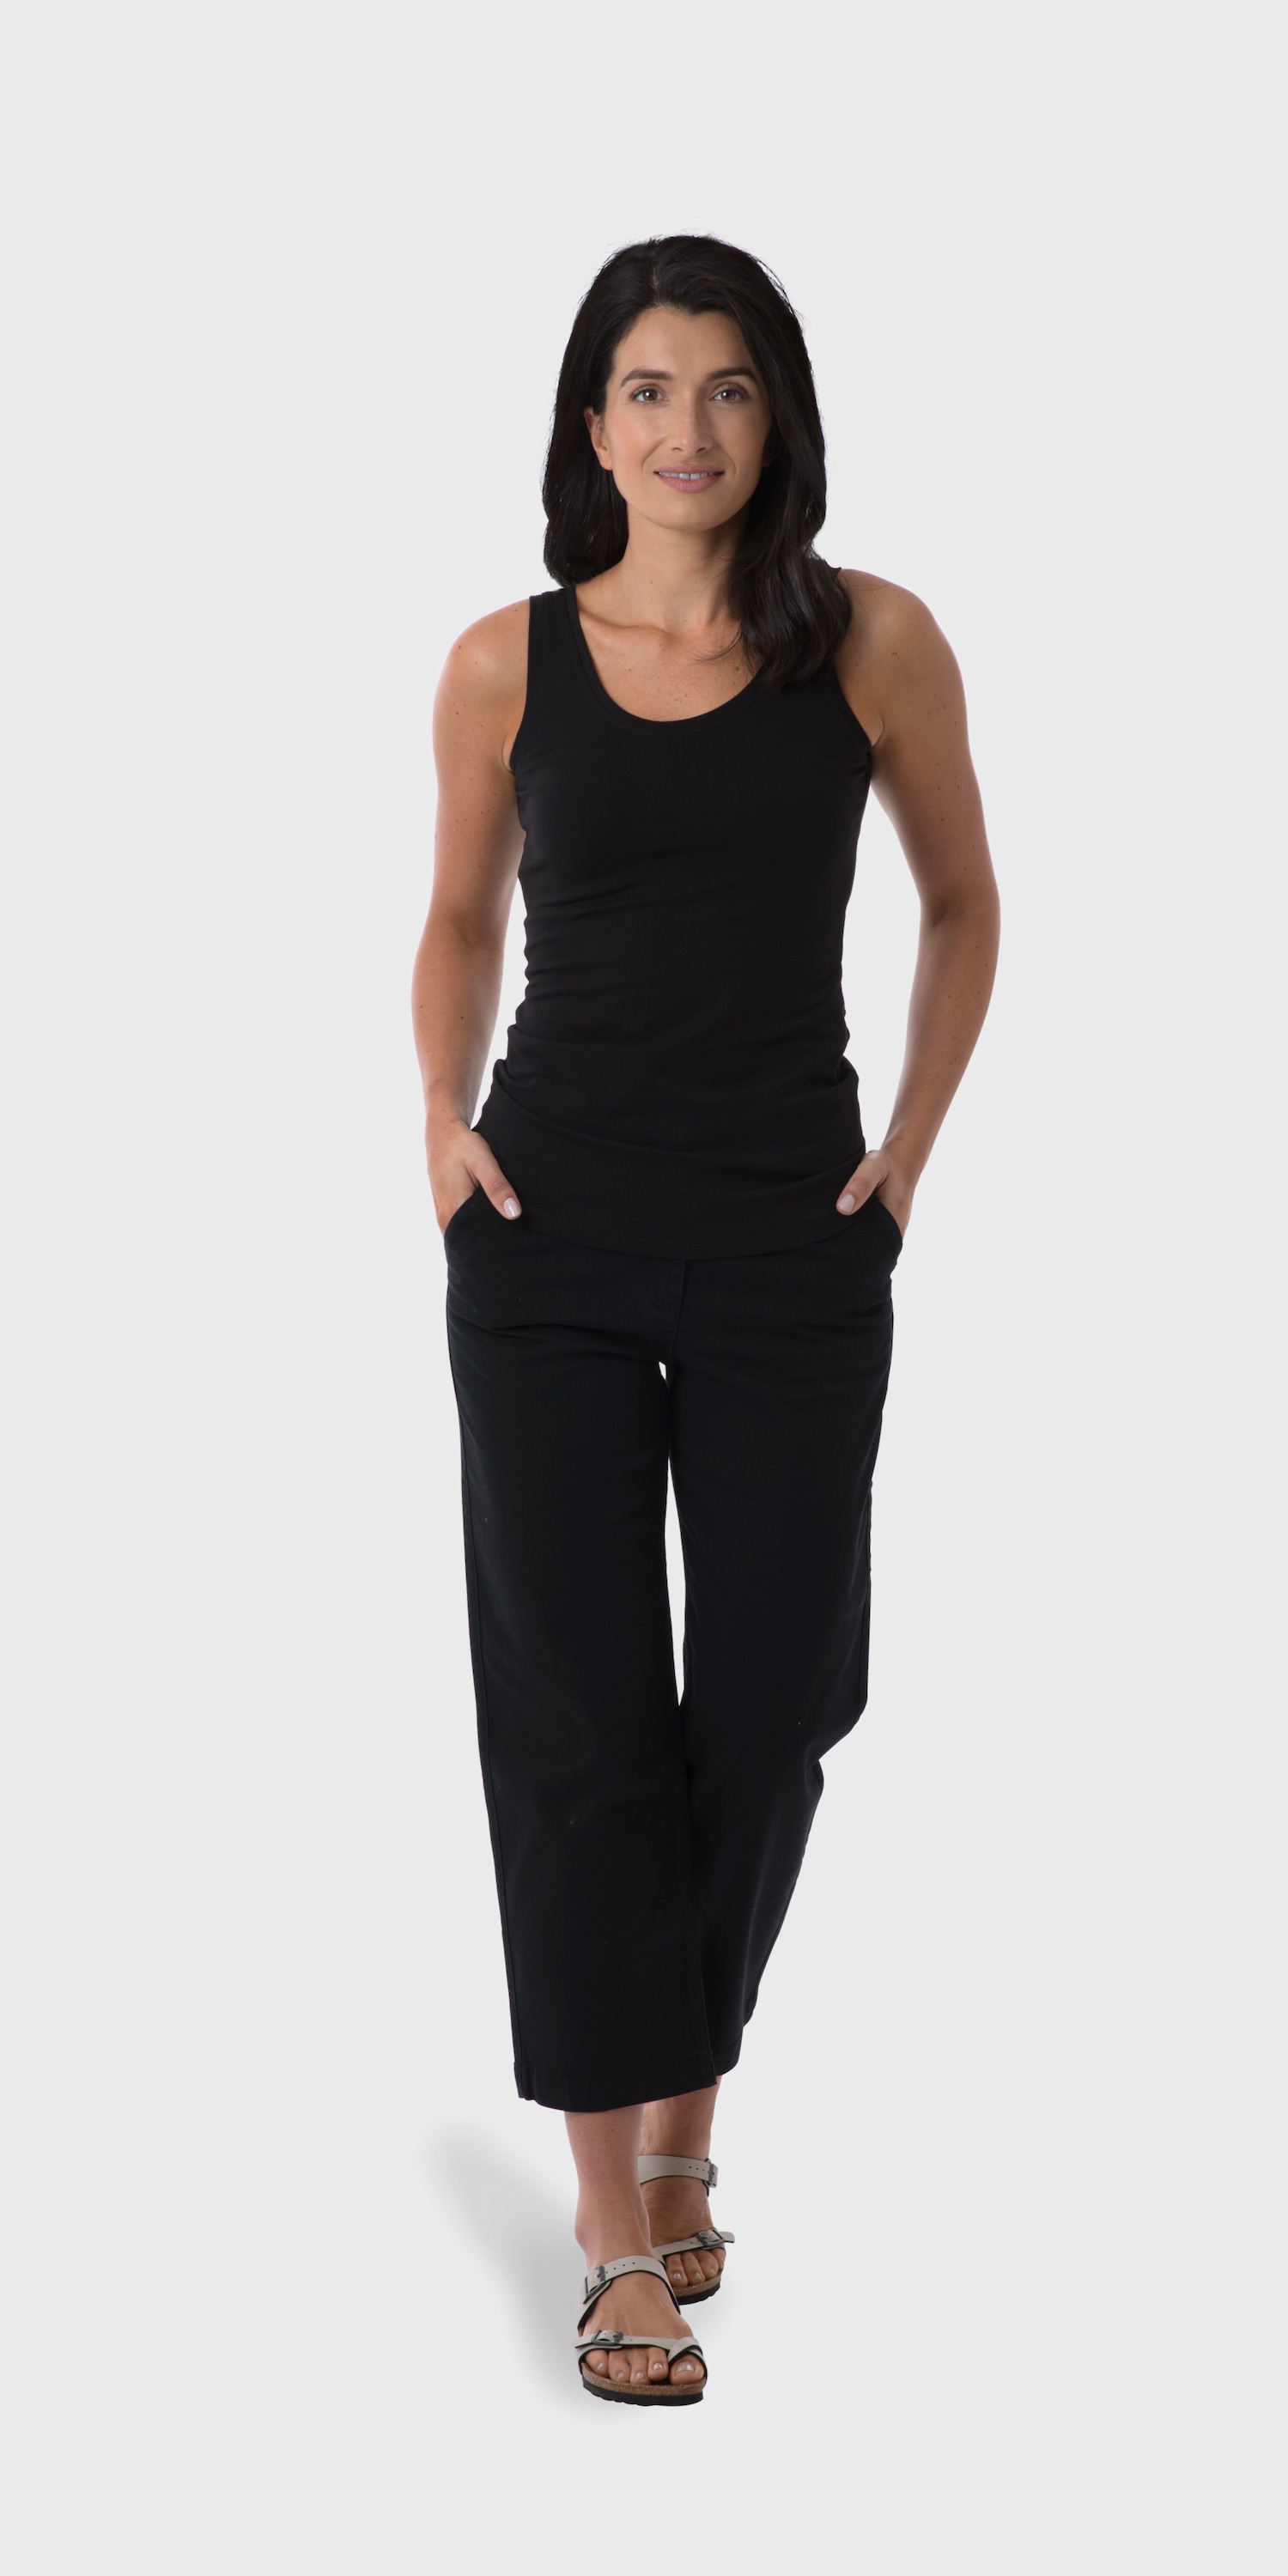 Women's black organic cotton yoga vest